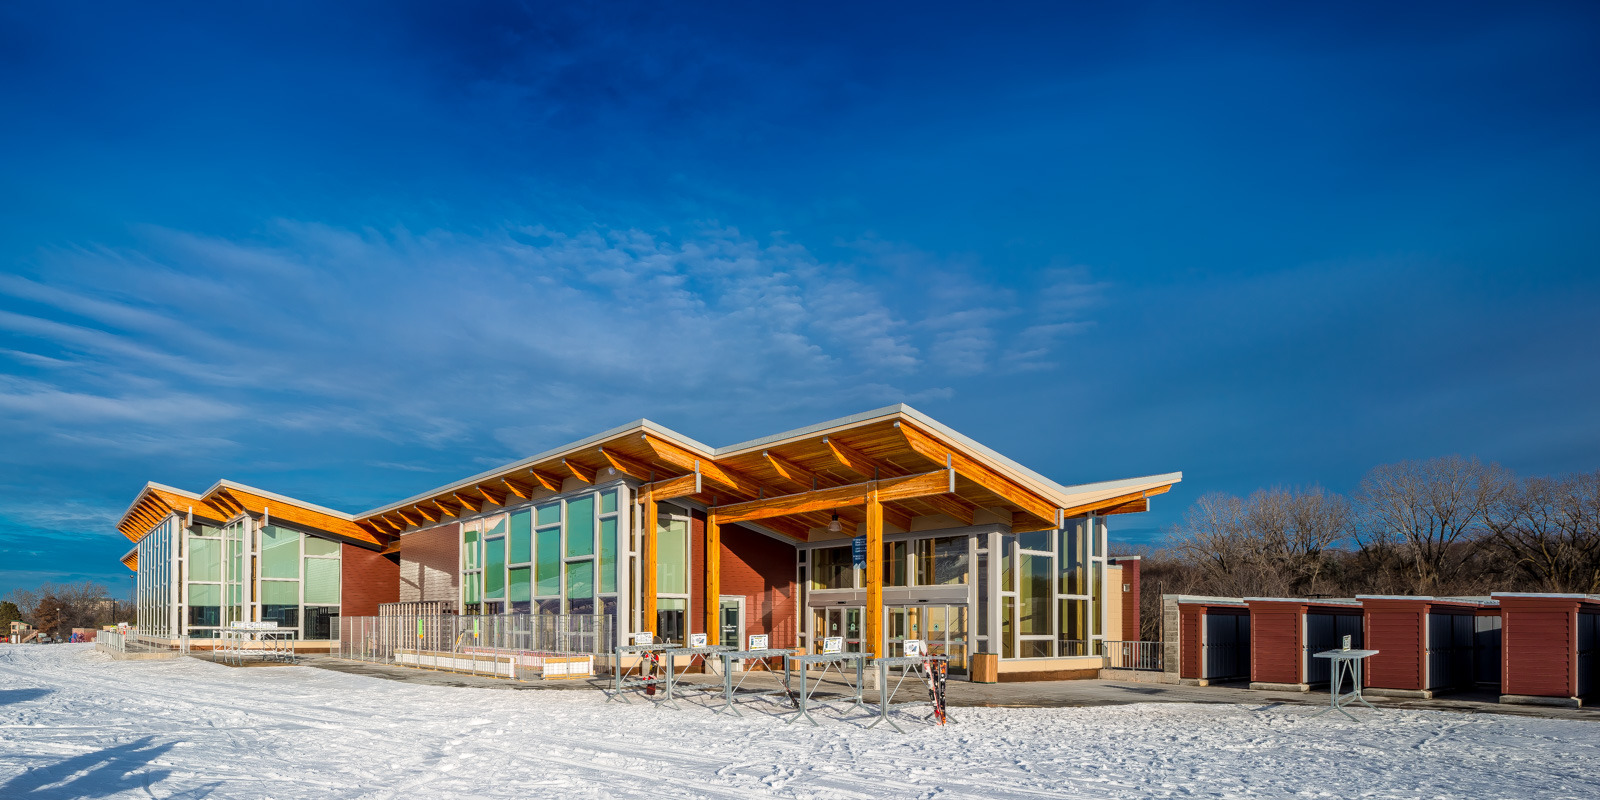 The exterior design of Hyland Ski Chalet featuring Pella® Support Products that complete the expansive exterior window facade that helped create a modern, energy-efficient building design.